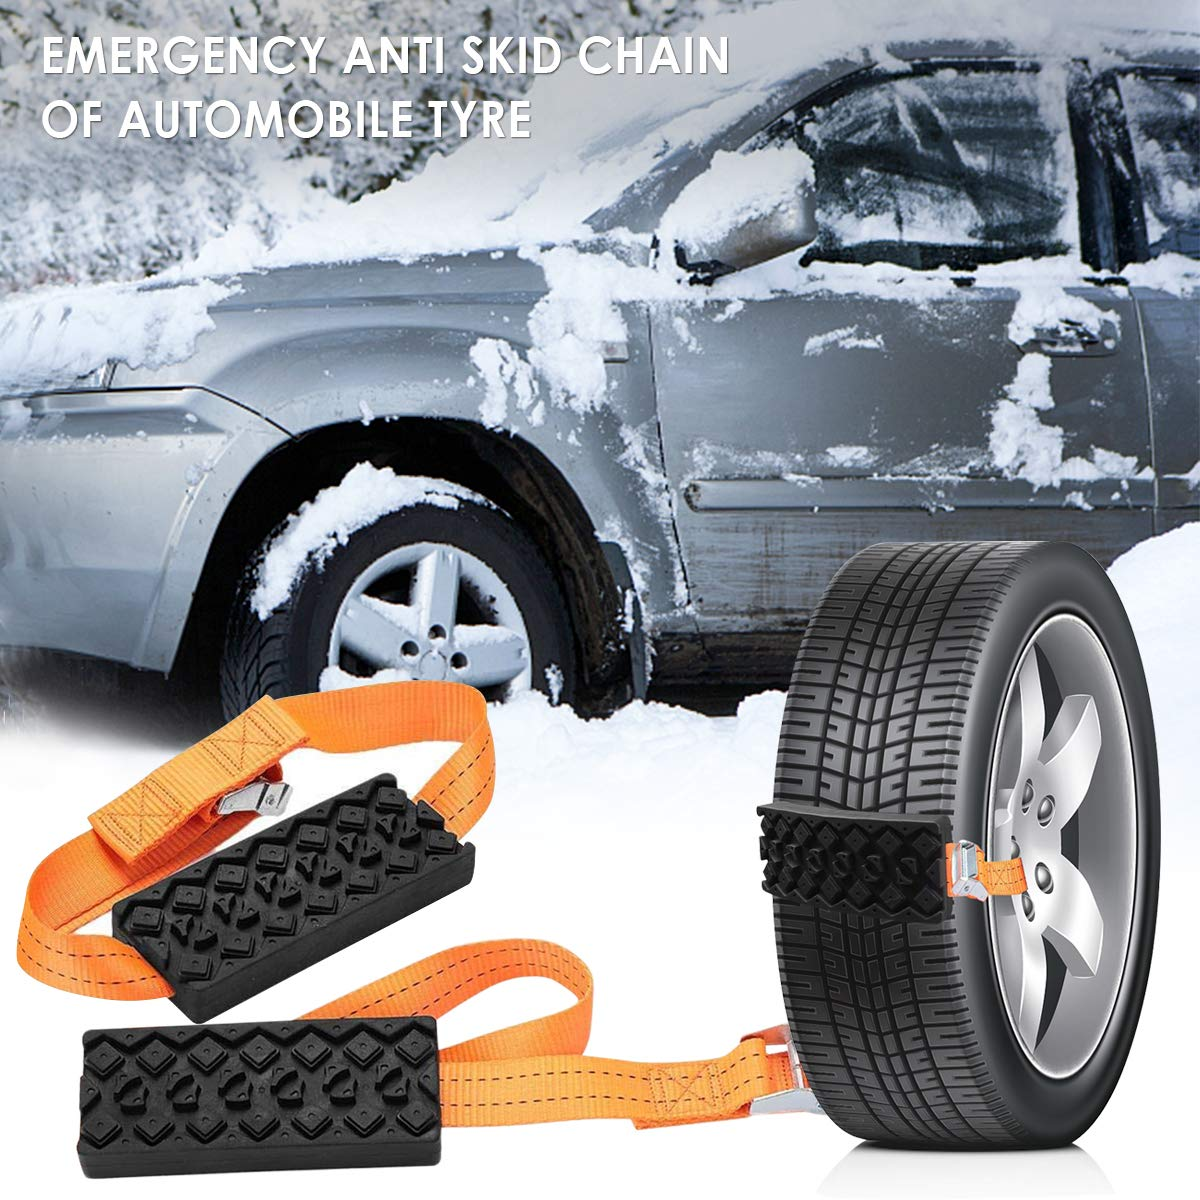 Auto Anti-Skid Rubber Block Anti-Slip Wheel Belt Traction Cable Chain for Vehicle Truck SUV Winter Driving Emergency on Snow Ice Sand Mud Road Dibiao 2 PCS Universal Car Tire Snow Chains